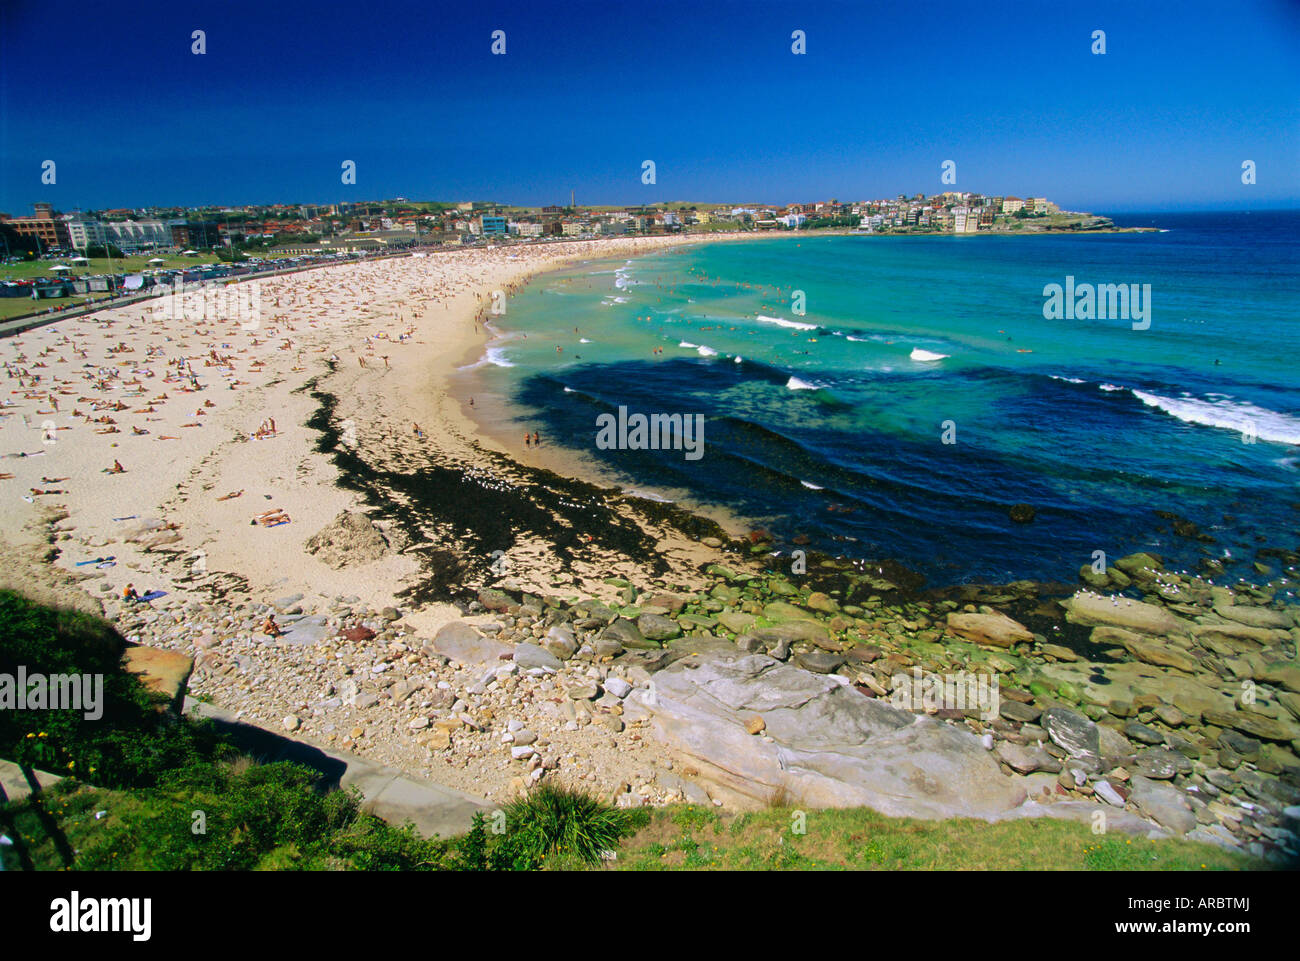 Bondi Beach, one of the city's southern ocean suburbs, Sydney, New South Wales, Australia - Stock Image